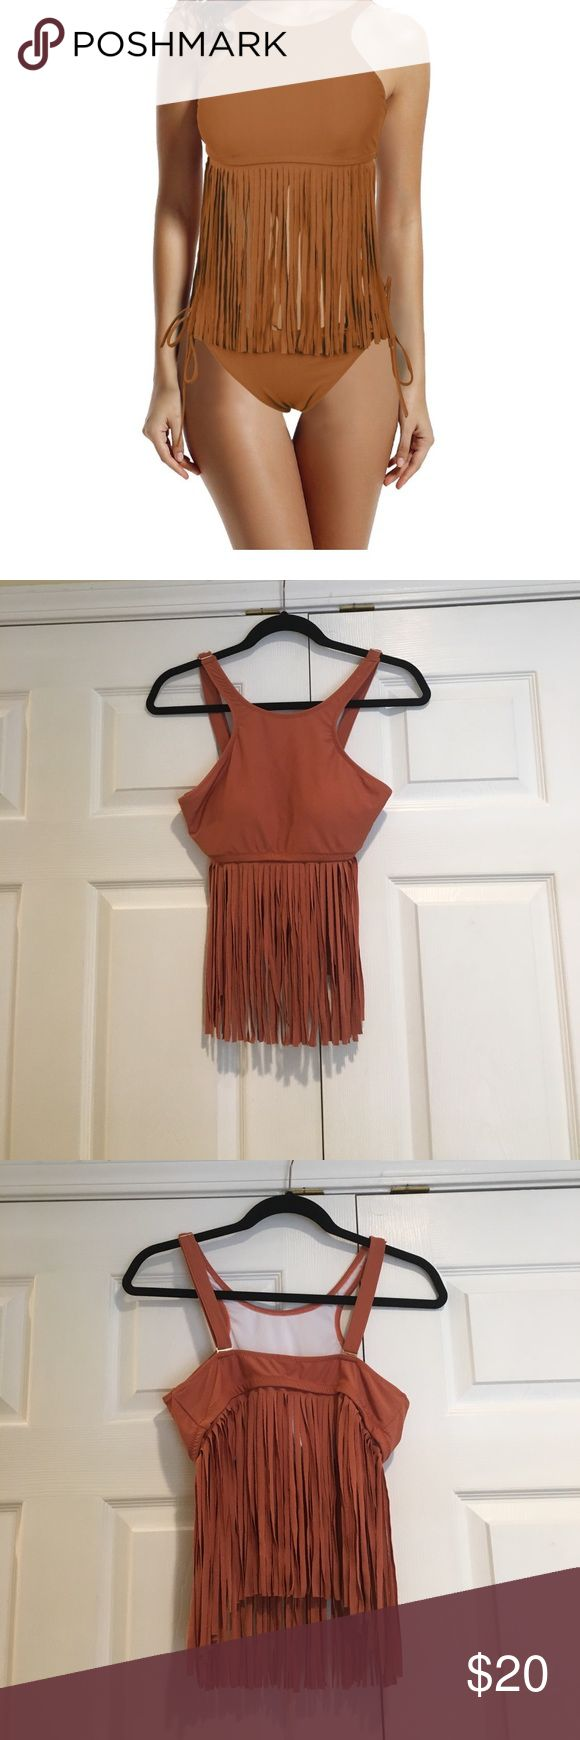 Fringe brown bikini Fringe brown bathing suit. Top was only worn for several hours for Halloween costume. Bottoms are in original packaging and only opened to confirm size. Fringe covers all of belly and top fits like a sports bra. This is brown/tan but does look somewhat orange. Purchased from amazon. Size medium but runs small. Hand wash only. Price firm. No trades. zeraca Swim Bikinis